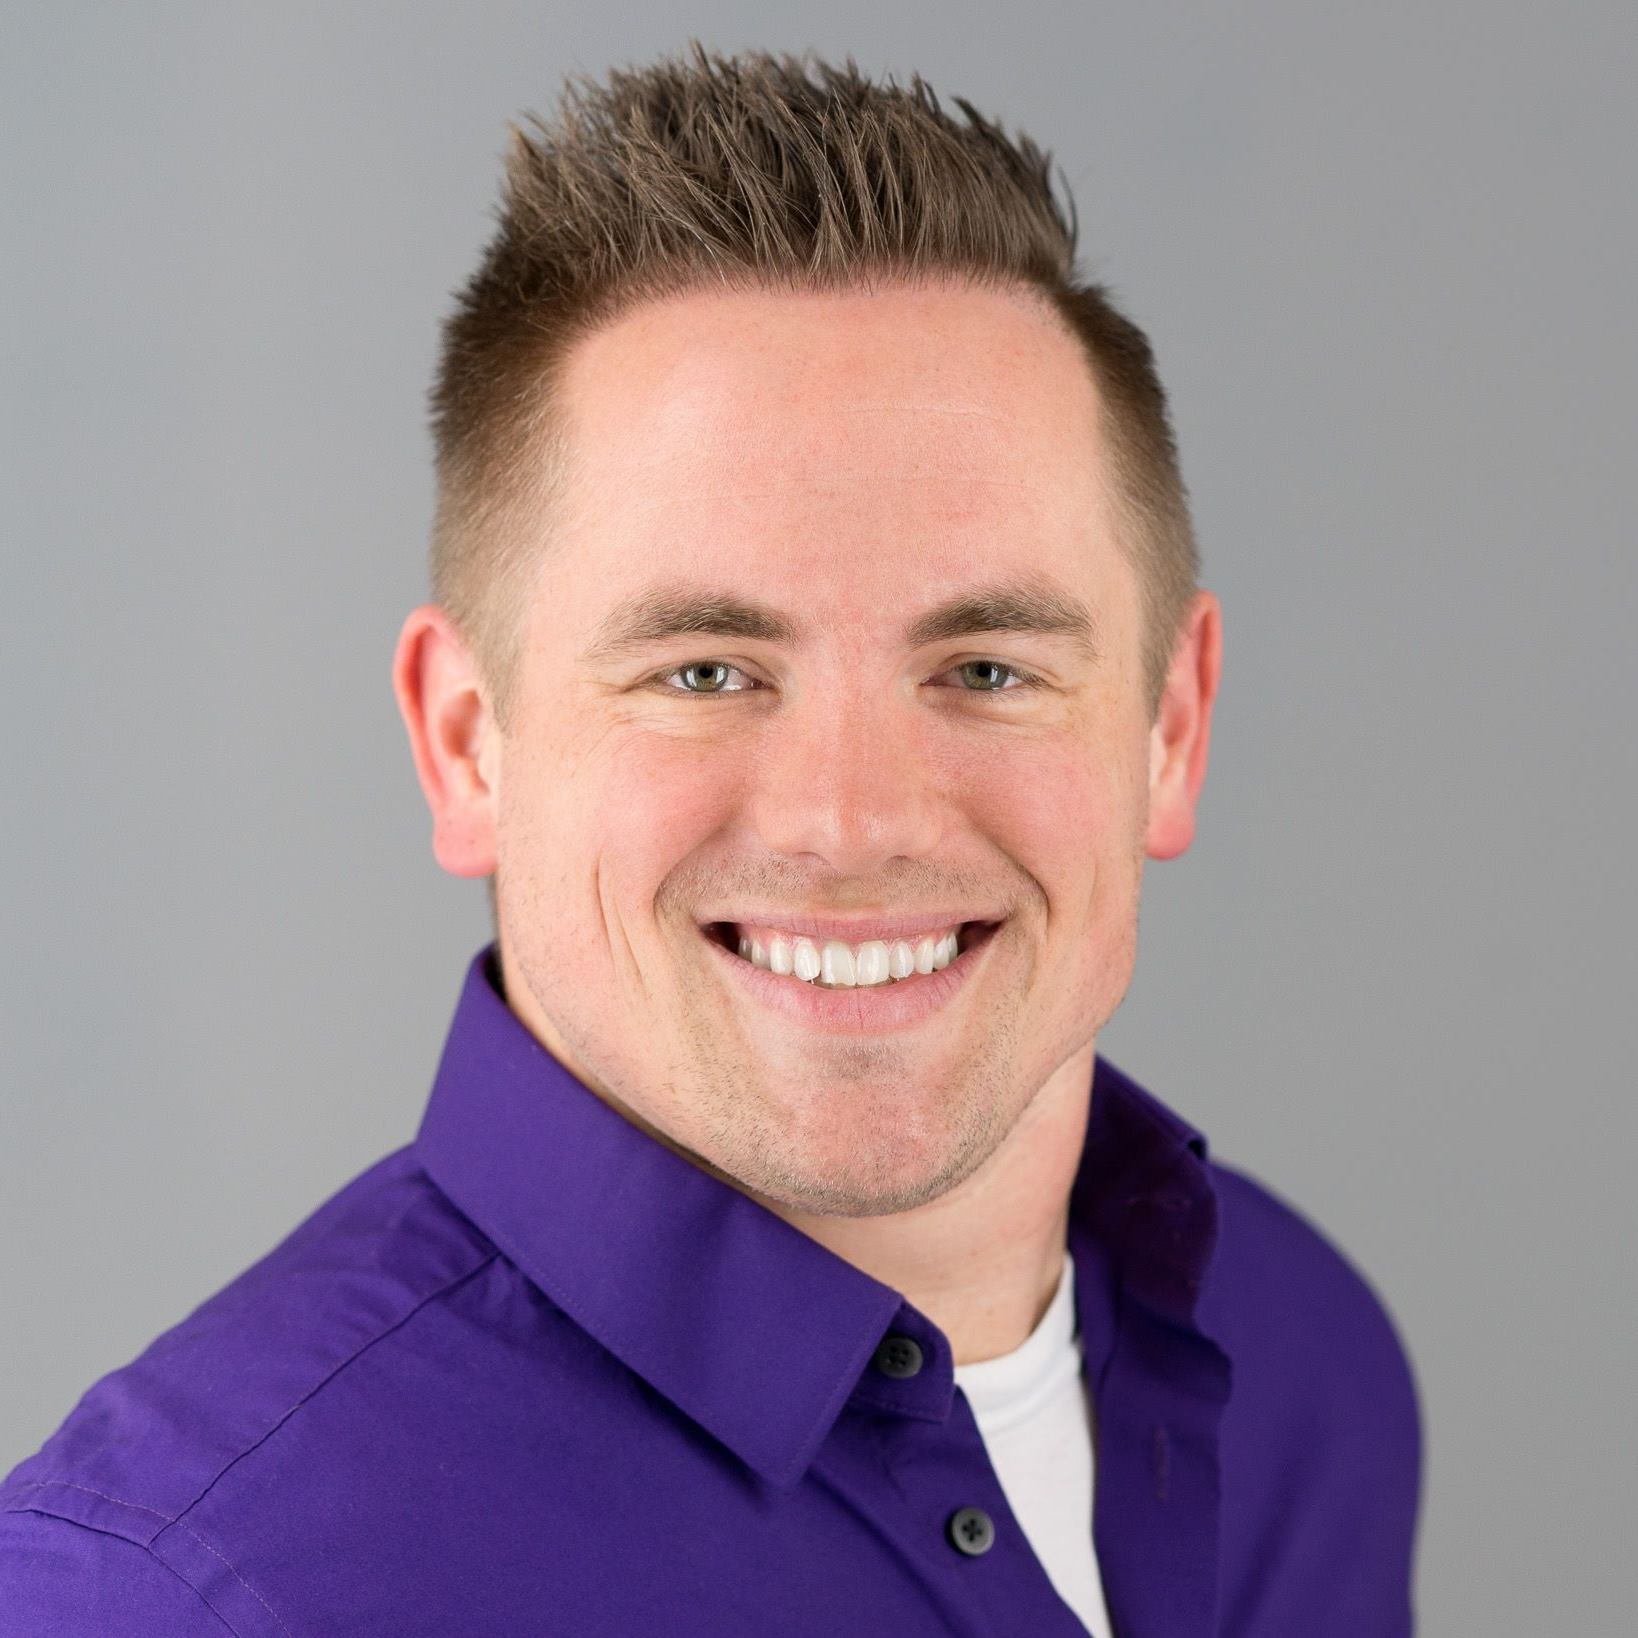 NEXTGEN: Dr. Wes McCann – a young optometrist with four practices